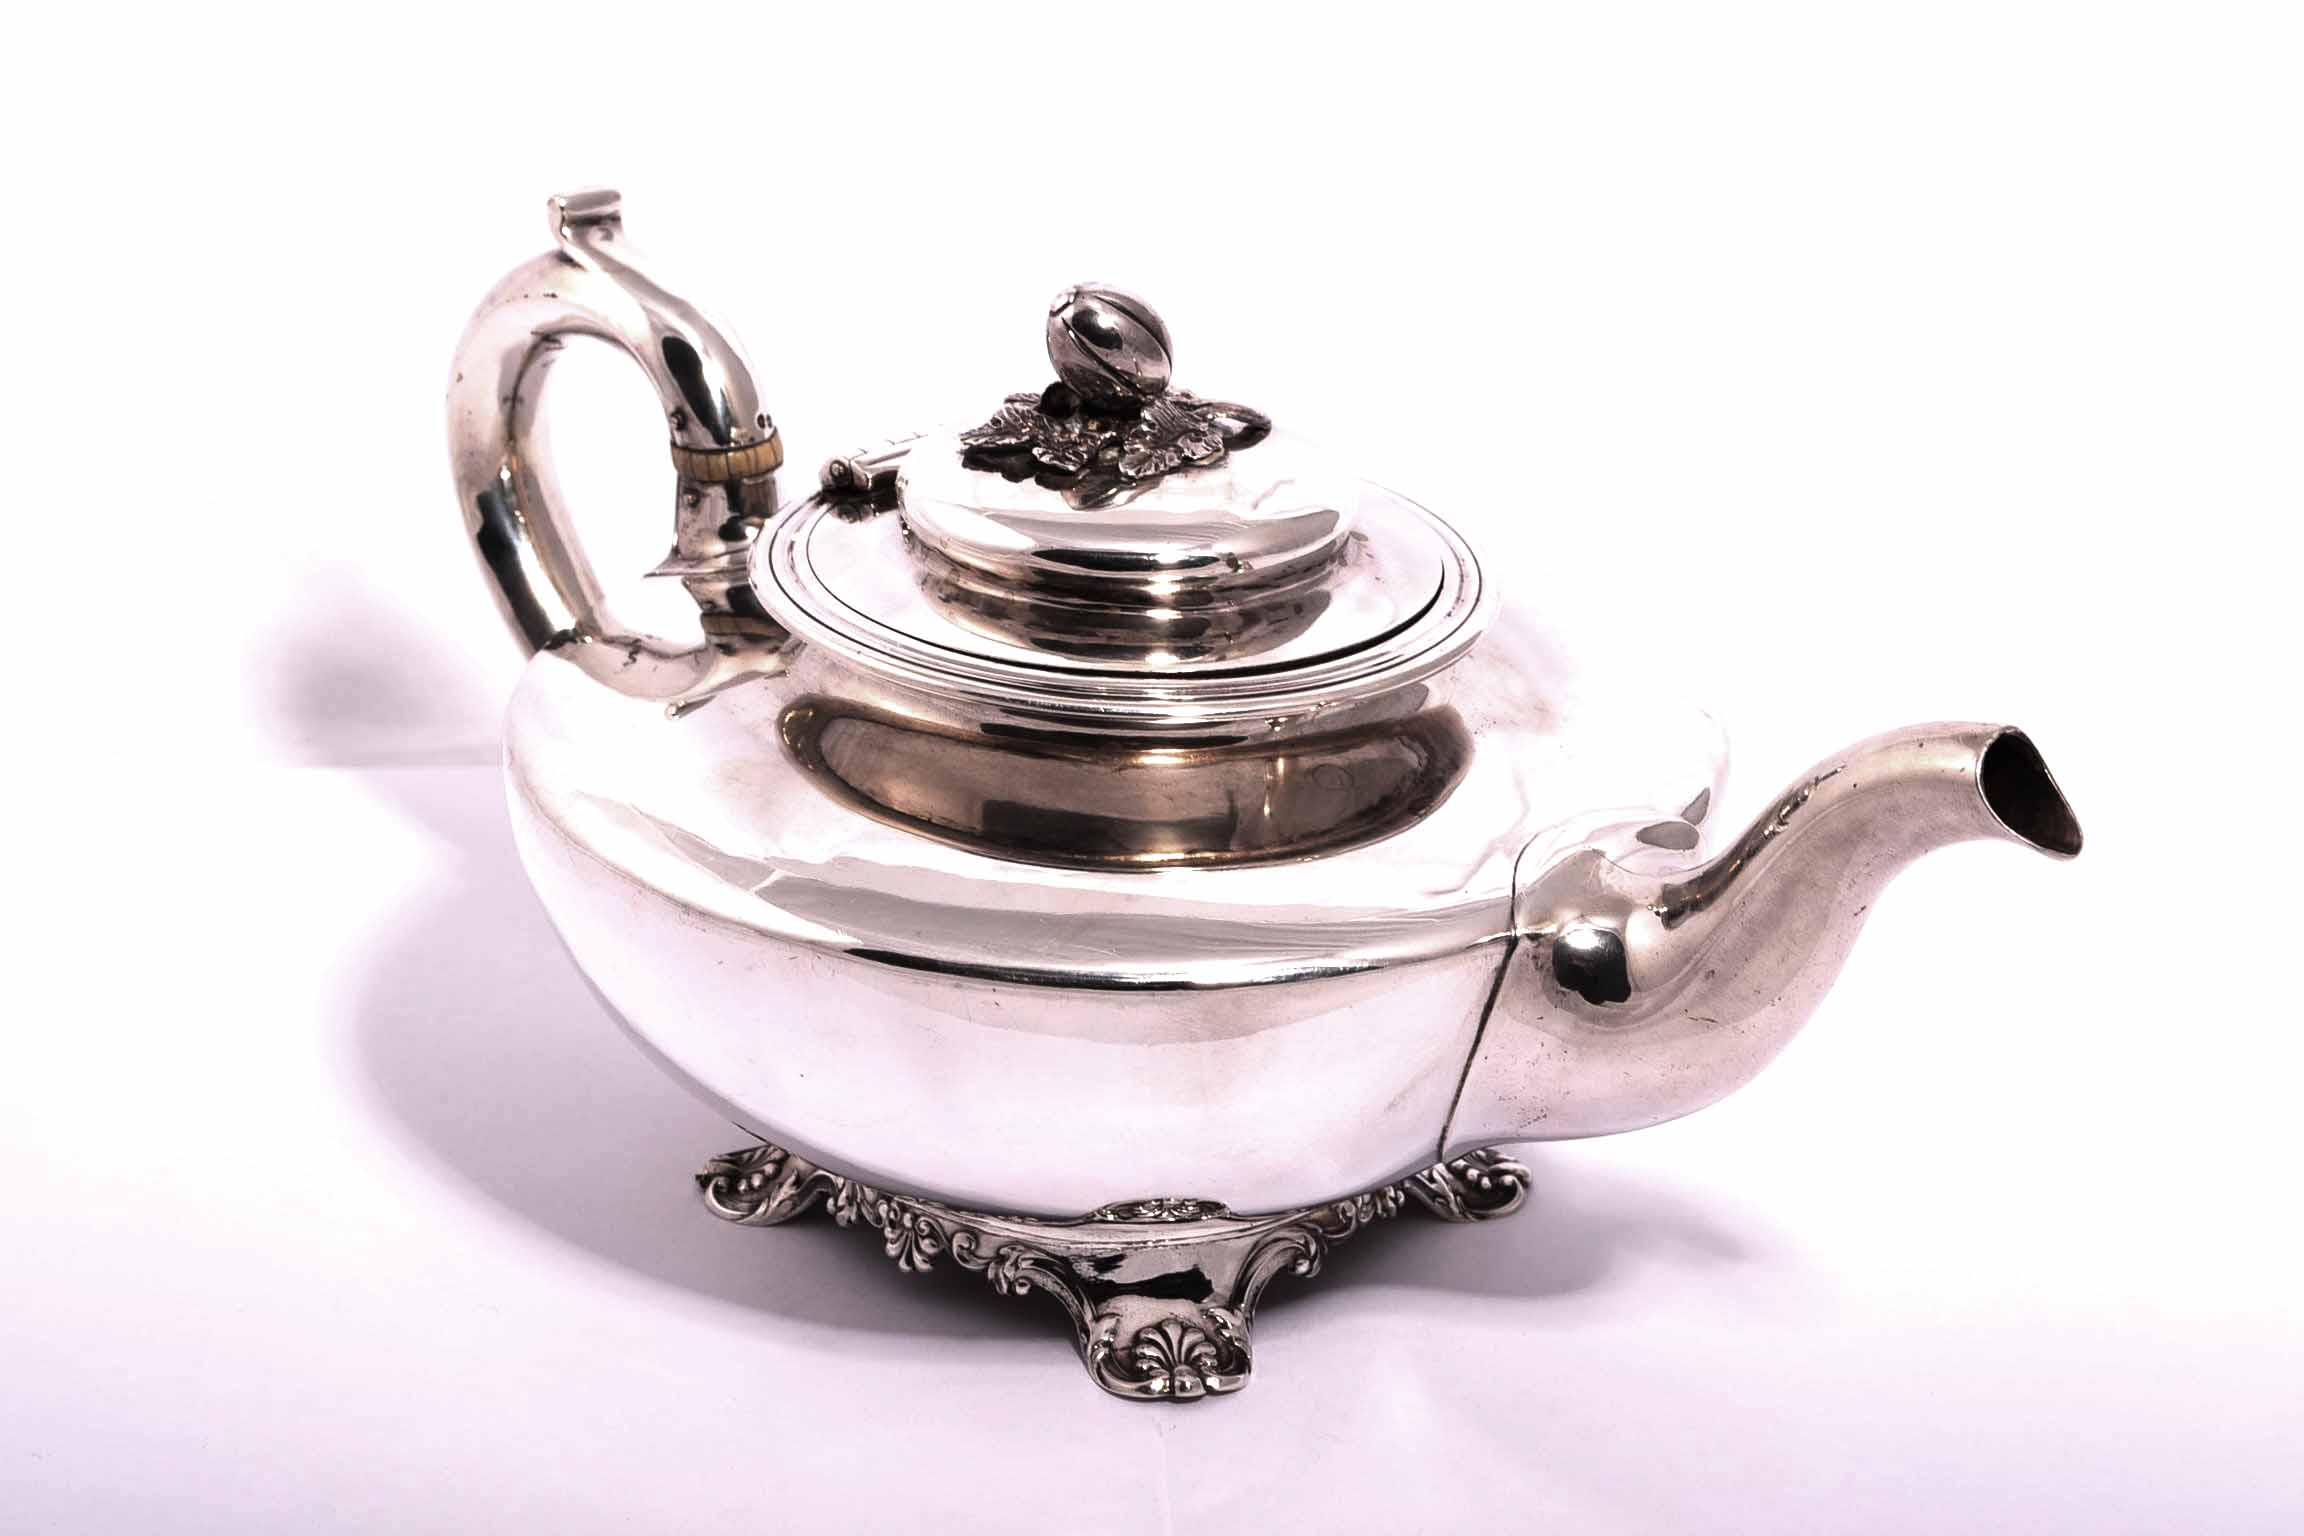 Regent Antiques Silver and silver plate Sterling  : 04164 Antique Victorian Silver Teapot 1837 1 from regentantiques.com size 2304 x 1536 jpeg 146kB